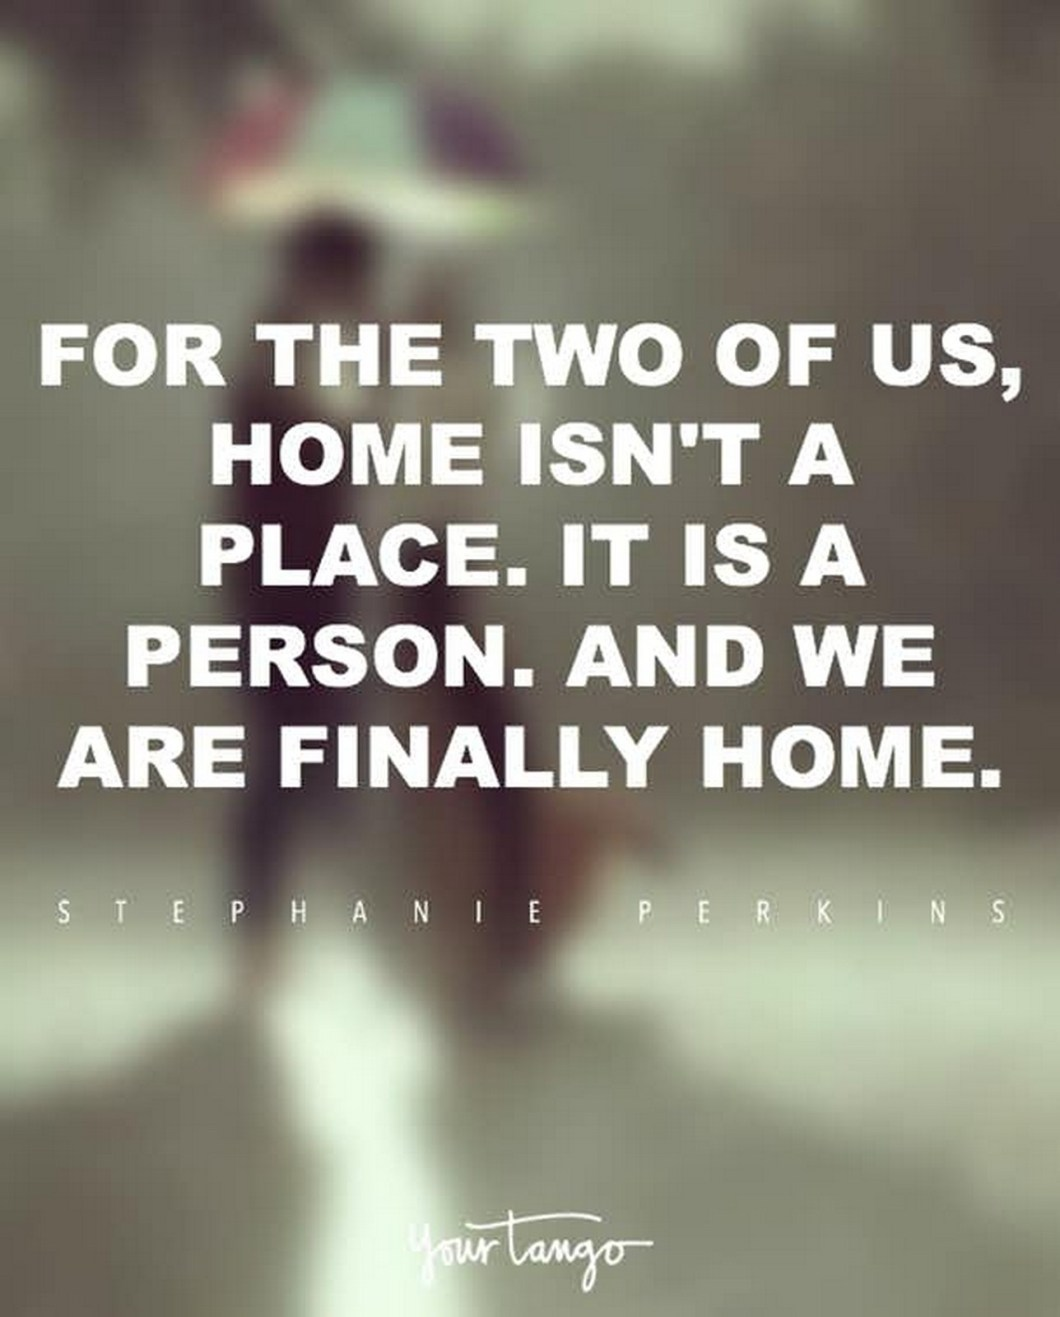 """55 Romantic Quotes - """"For the two of us, home isn't a place. It is a person. And, we are finally home."""" - Stephanie Perkins"""